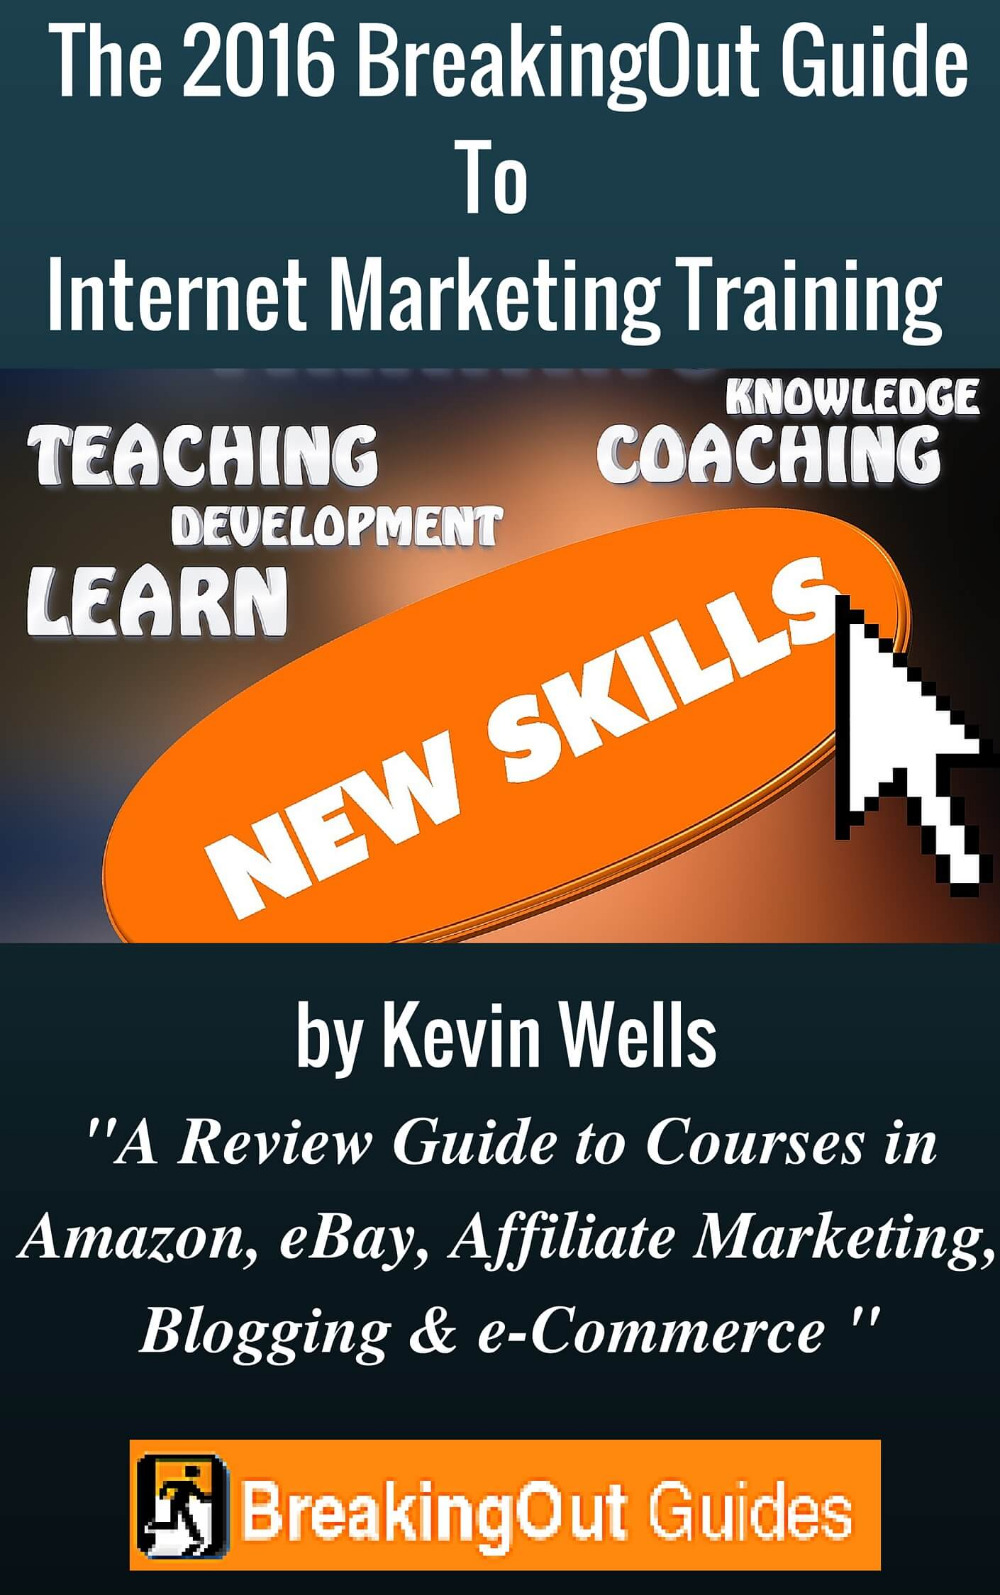 The 2016 BreakingOut Guide To Internet Marketing Training